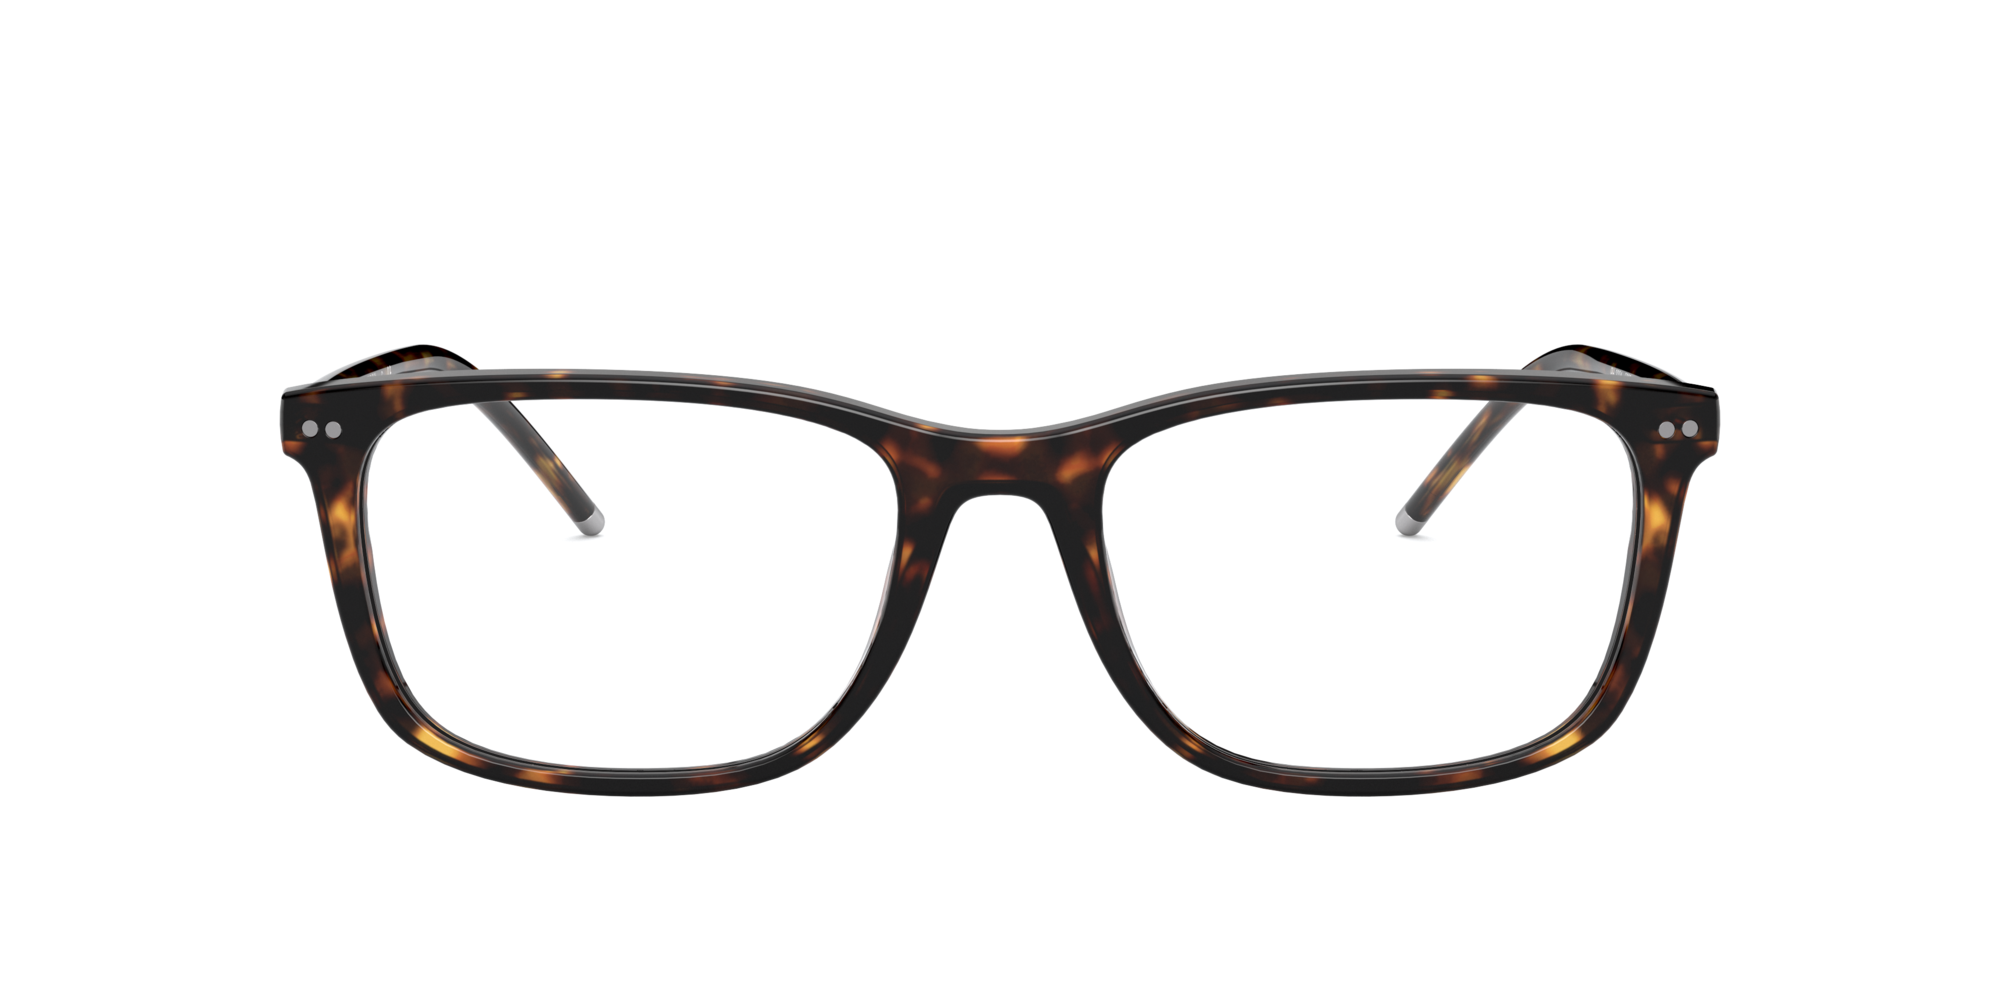 Image for PH2224 from LensCrafters | Glasses, Prescription Glasses Online, Eyewear